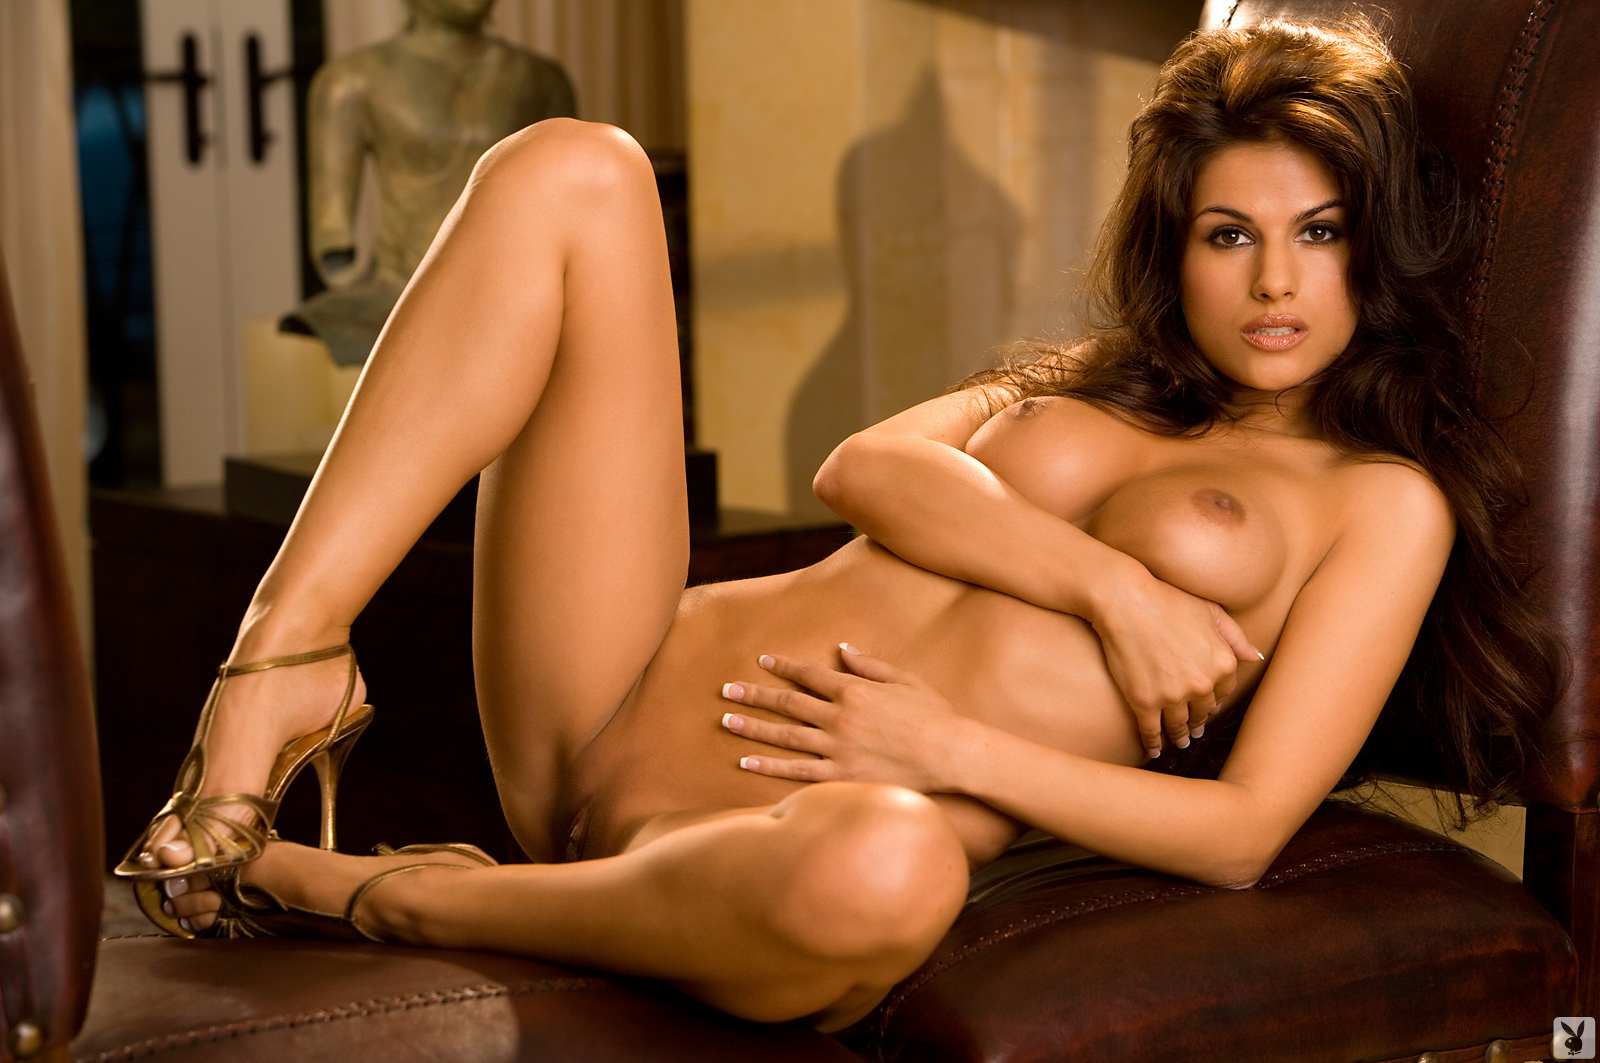 nicolle-nude-playboy-pussy-period-videos